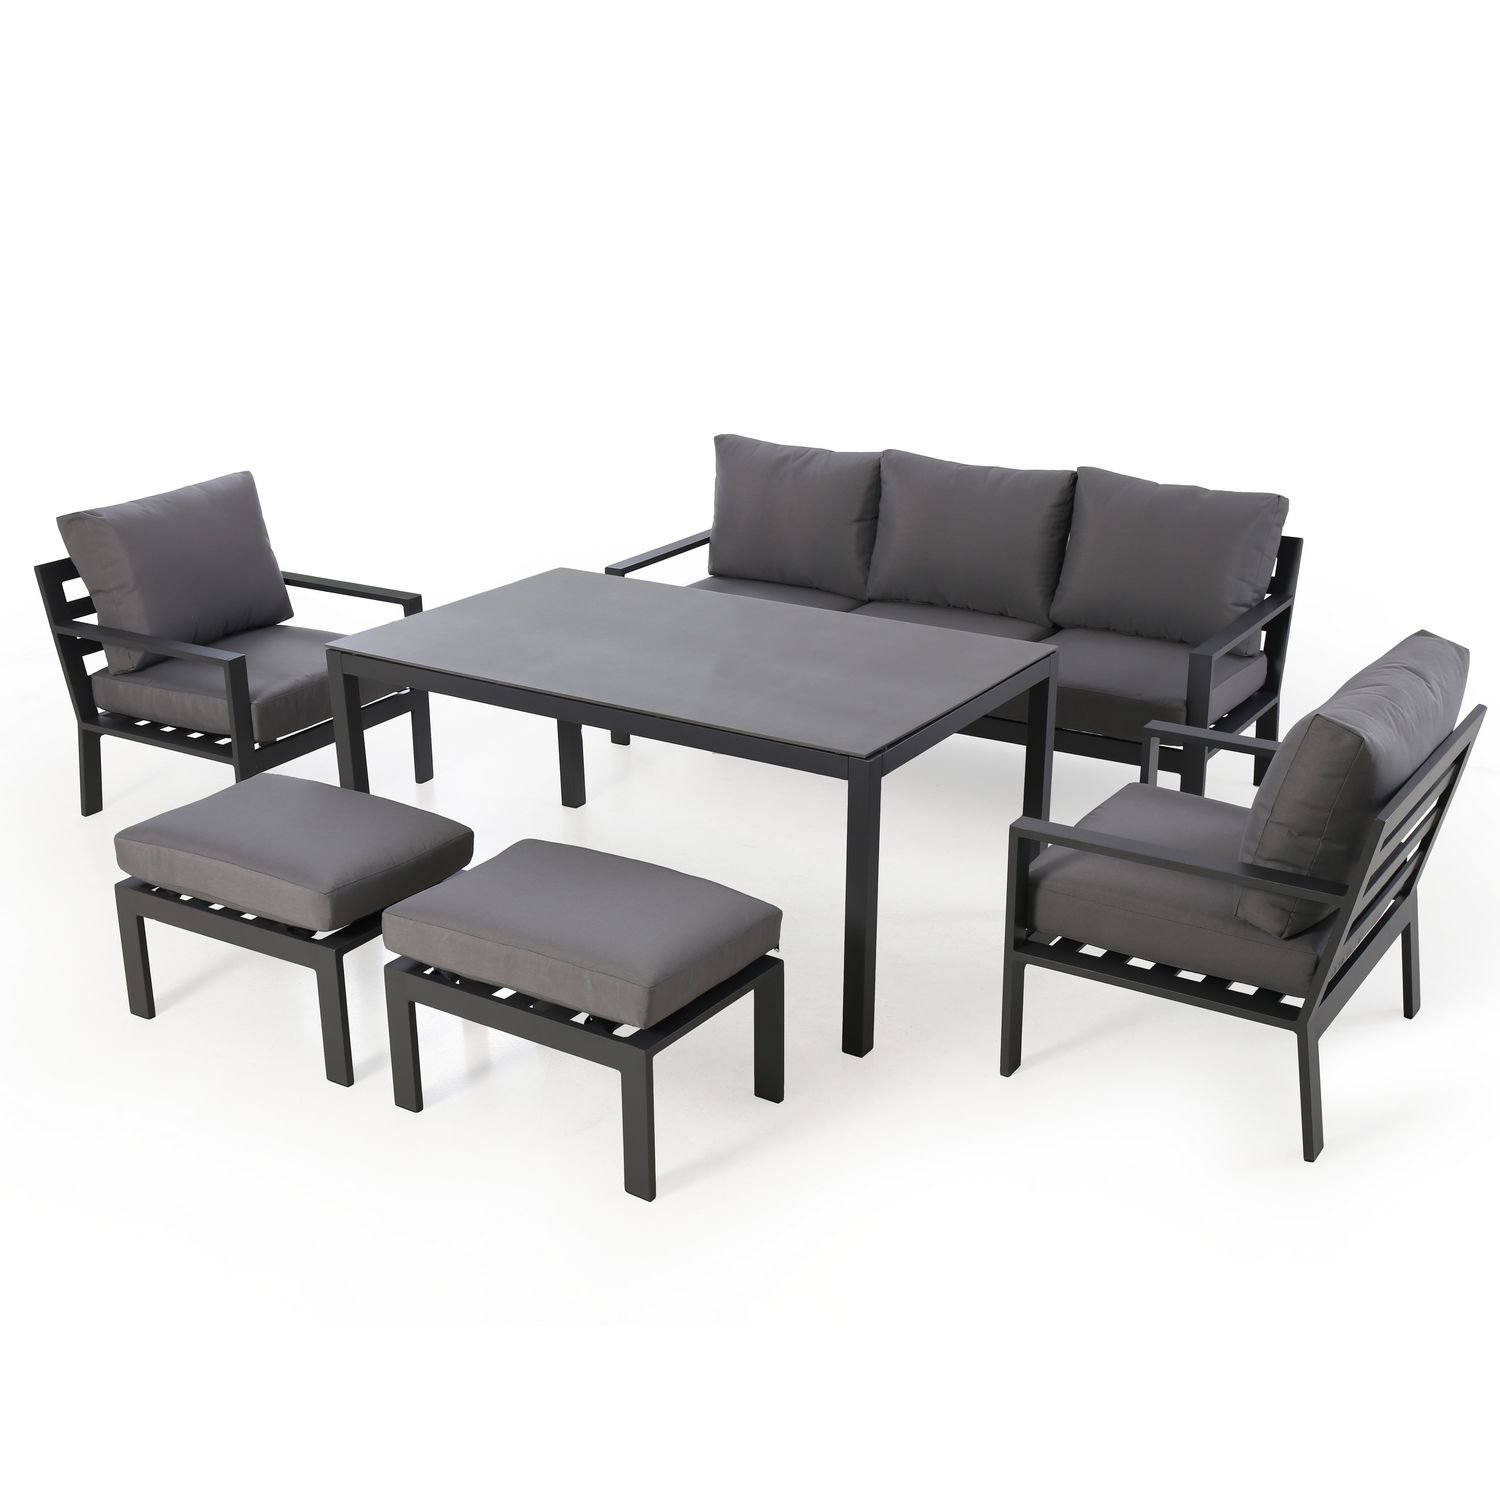 image-Maze Rattan Garden Furniture Madrid 3 Seater Sofa Set